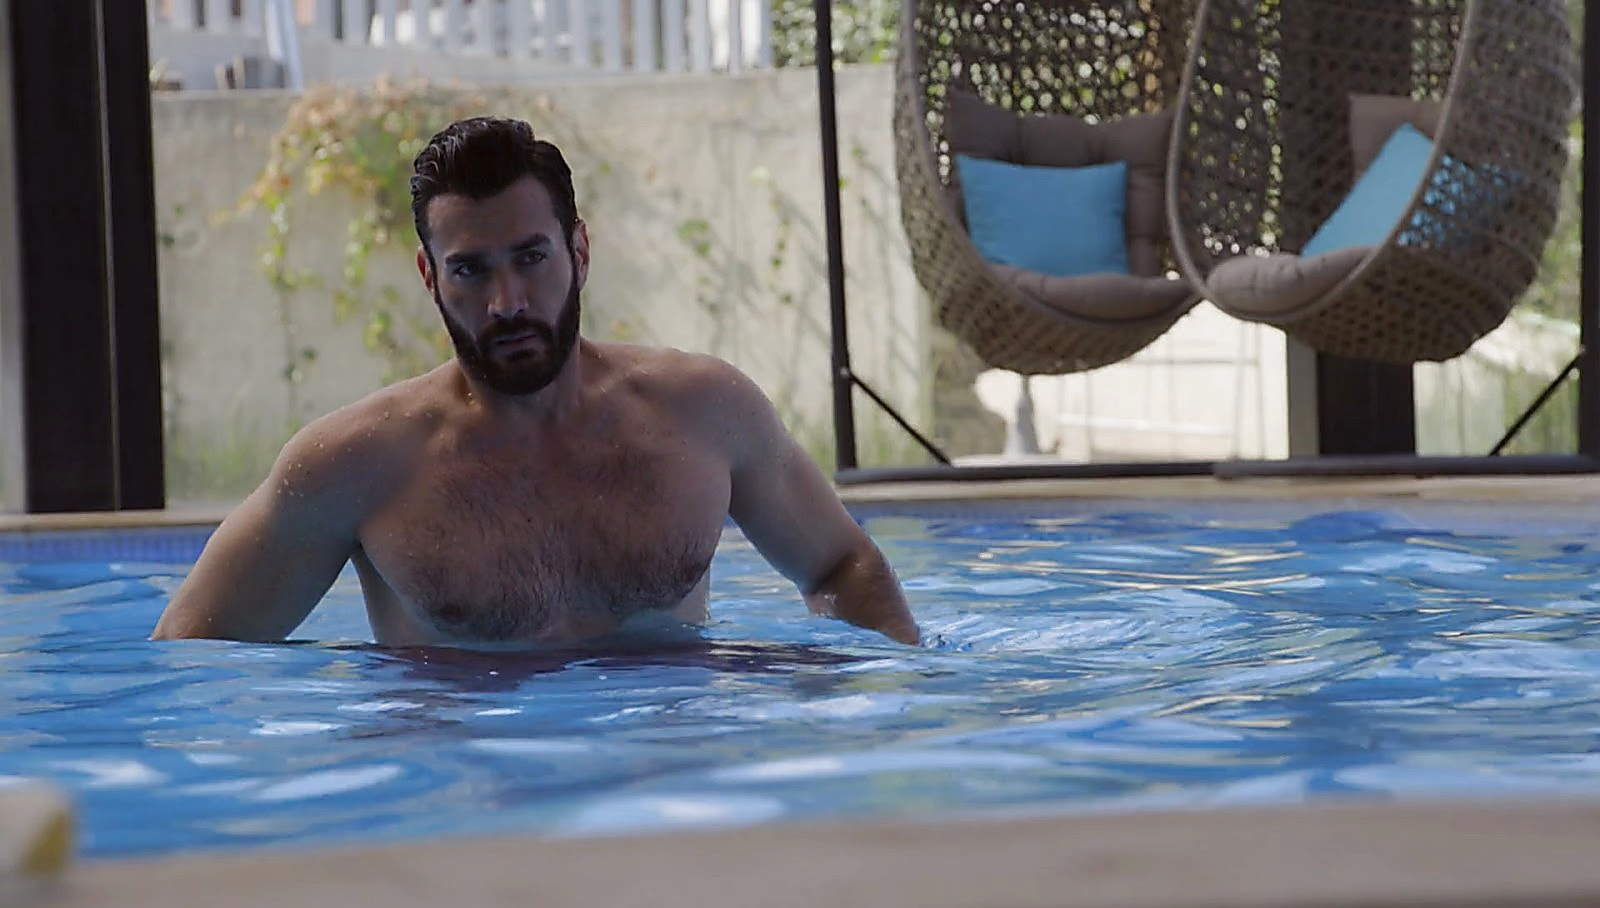 David Zepeda sexy shirtless scene June 19, 2017, 1pm